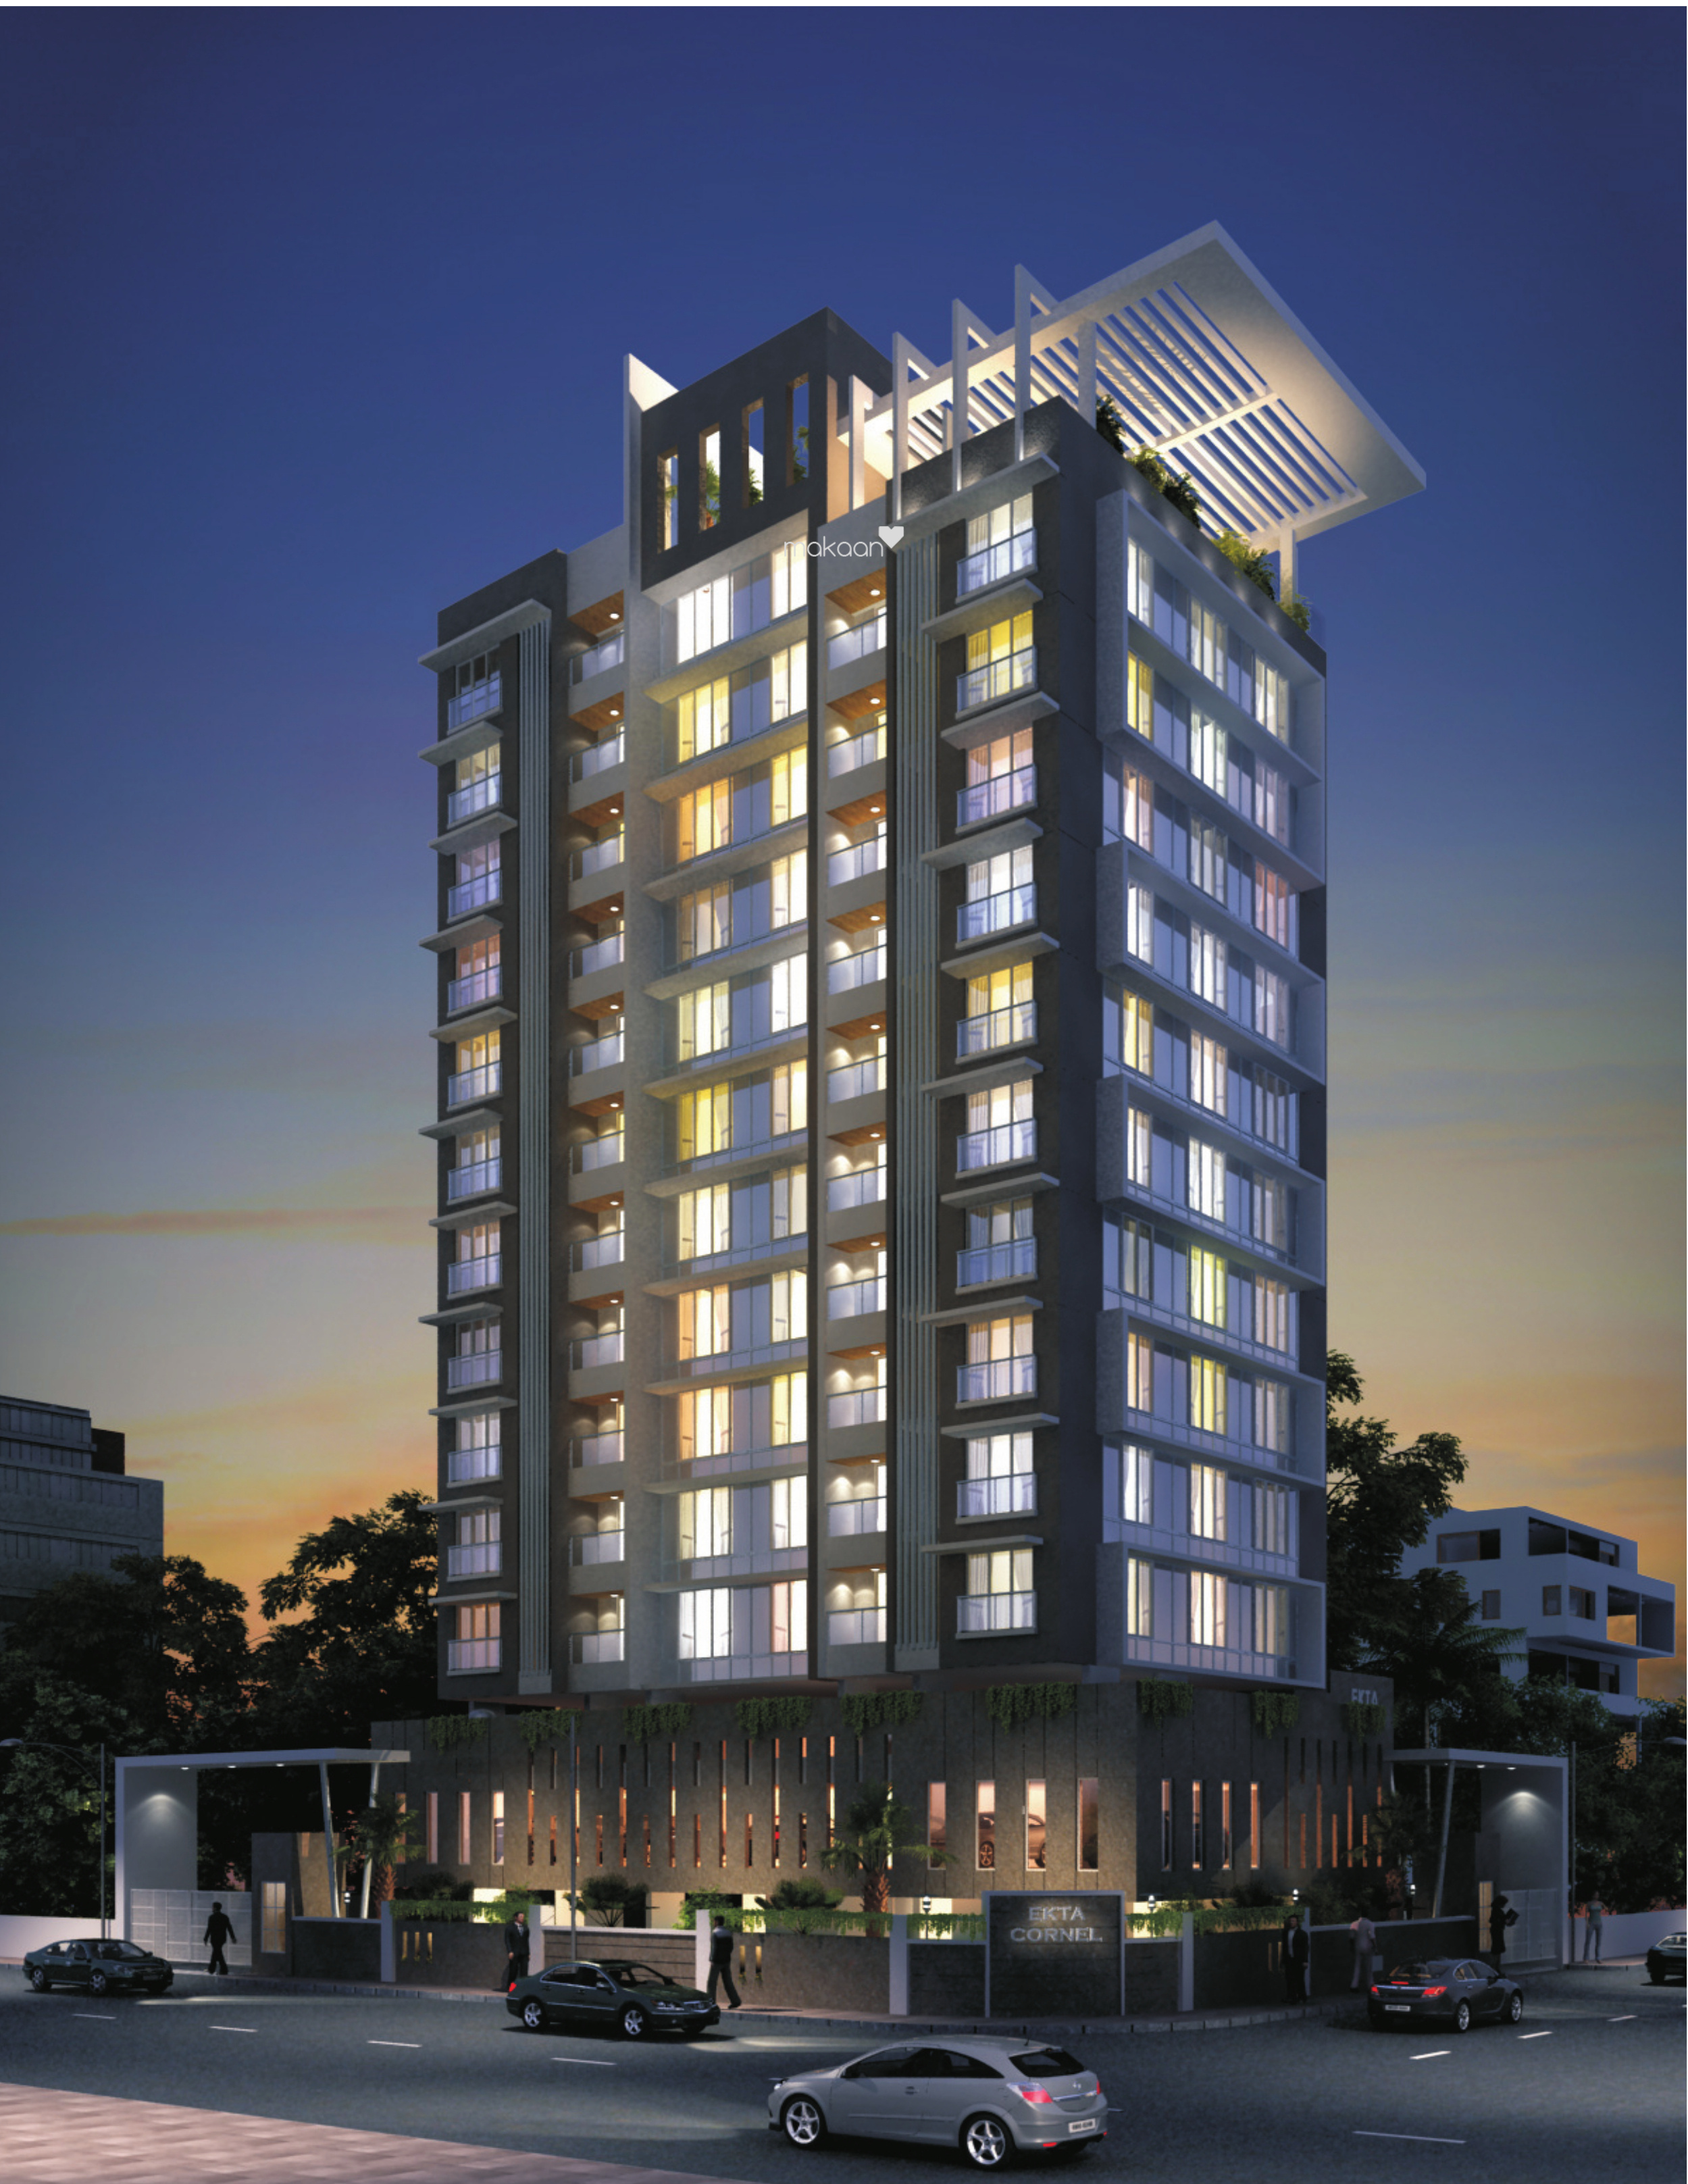 1430 sq ft 3BHK 3BHK+3T (1,430 sq ft) Property By R R Propertiees In Maplewood, Khar